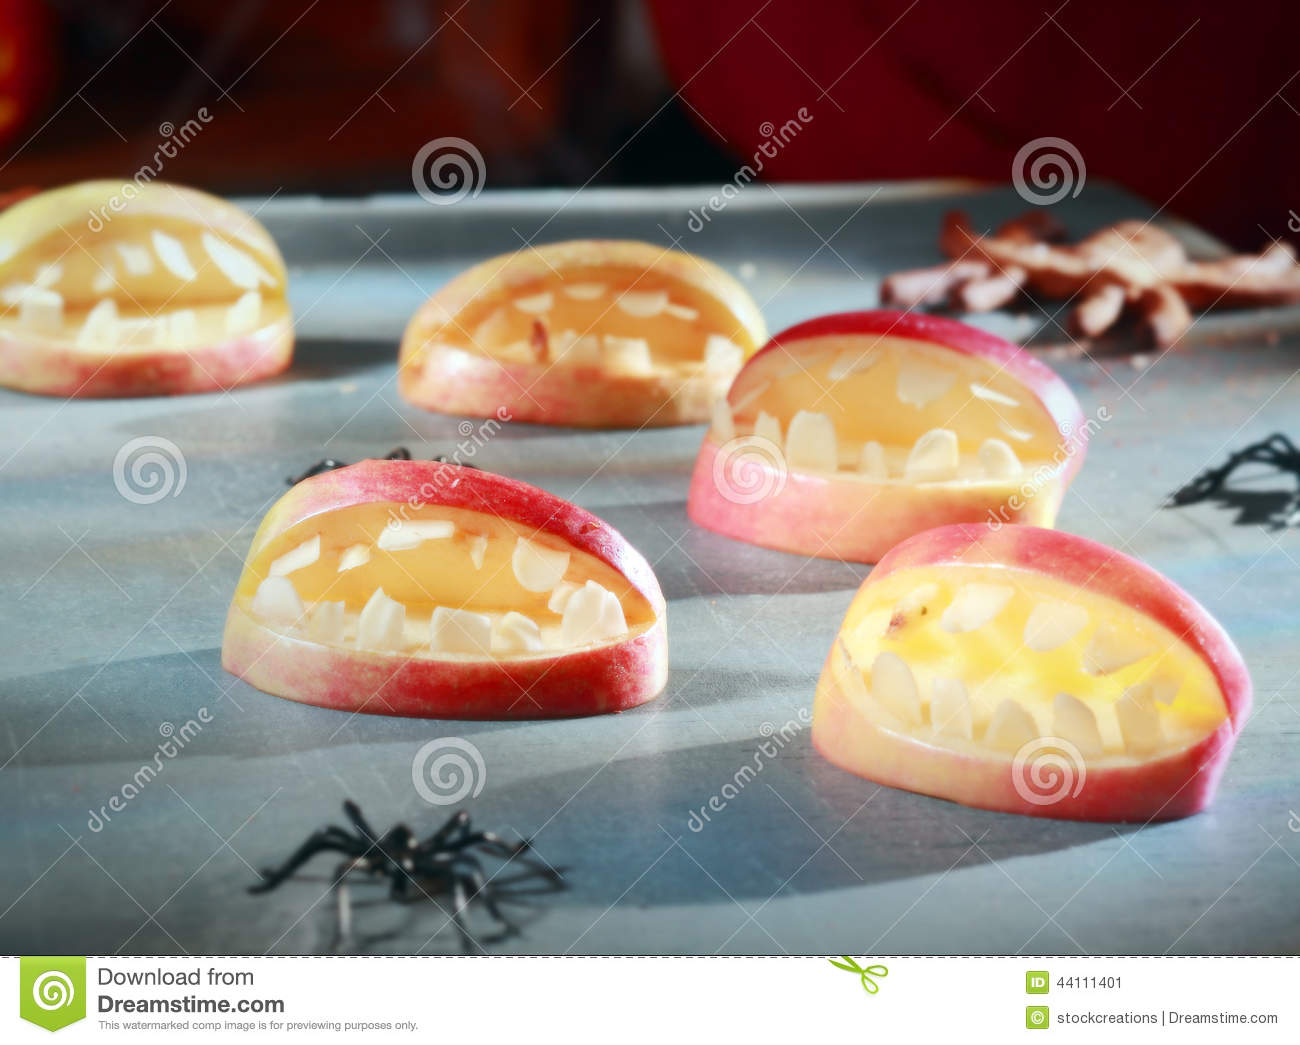 Scary Halloween Decorations For Favors Stock Photo - Image: 44111401